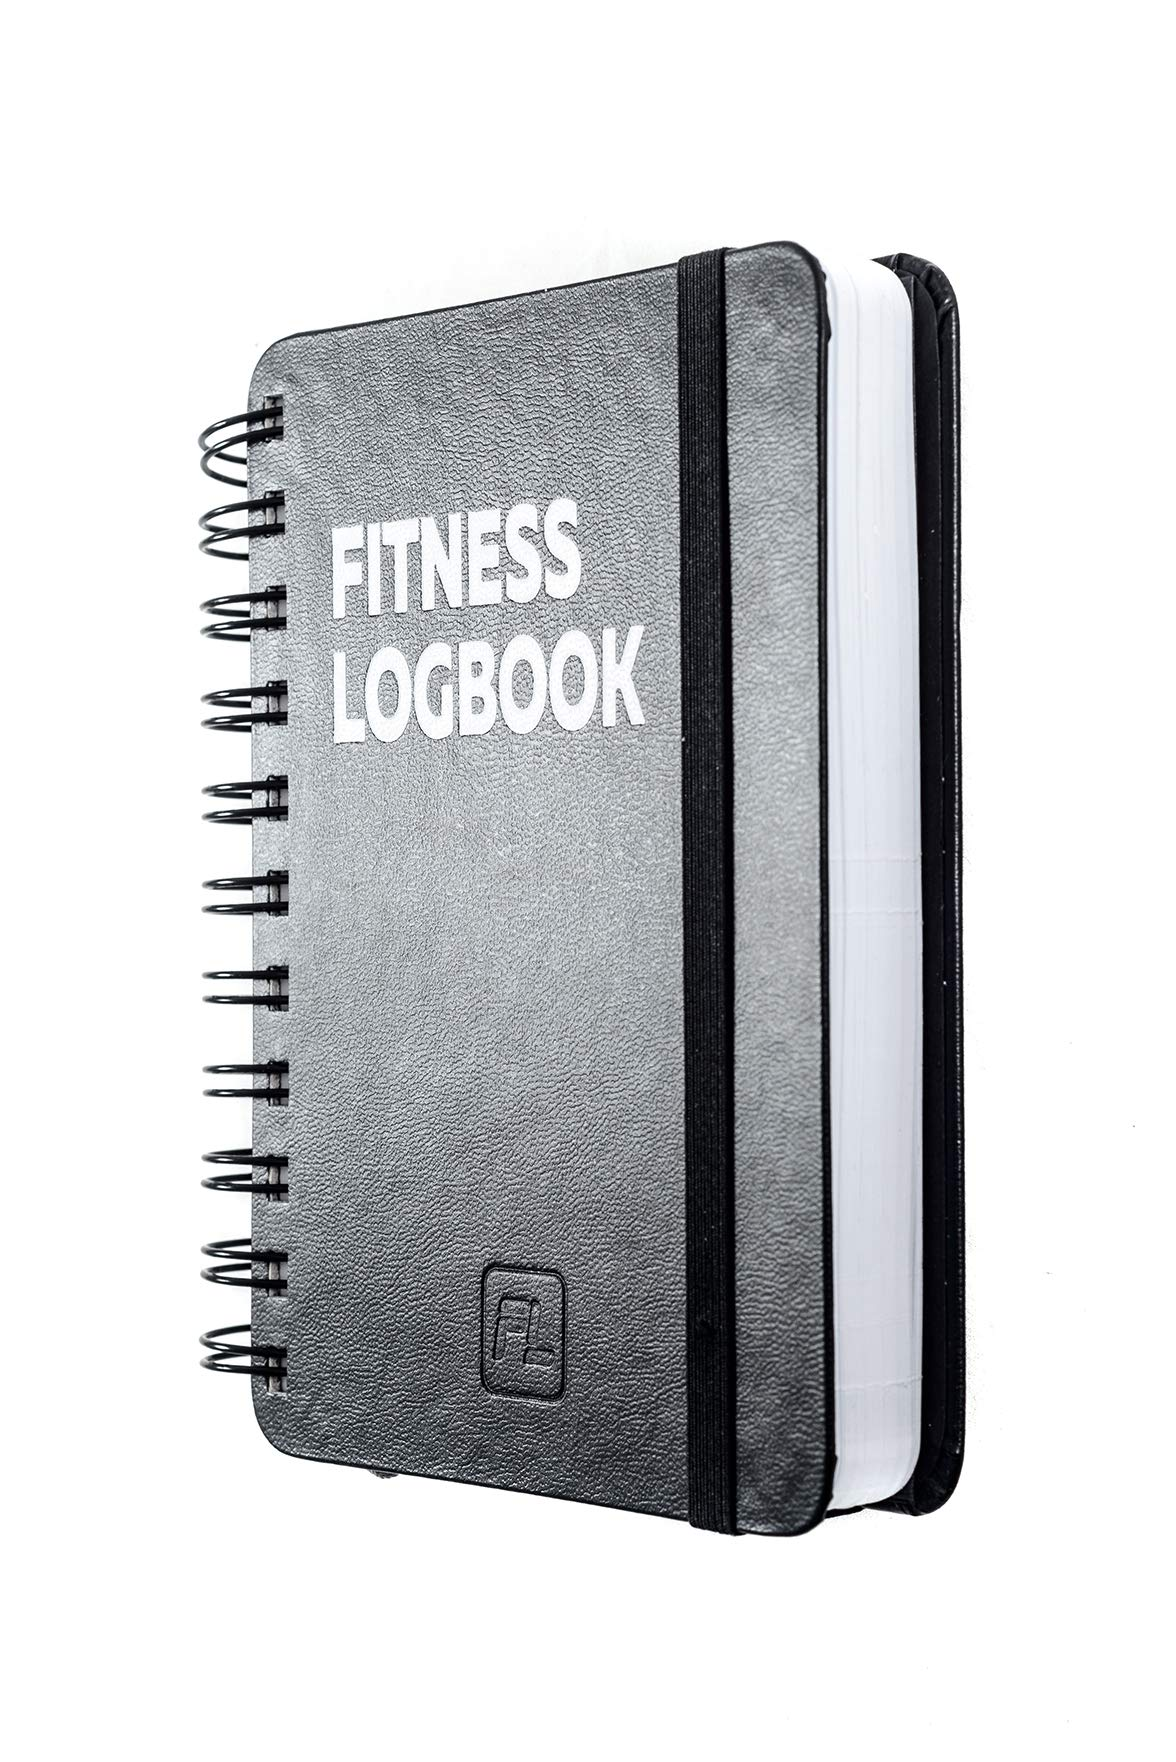 Fitness Logbook Mini: Undated Workout Journal – 4 x 6 inches – Thick Paper, Hard Cover, Elastic Closure, Round Corners…